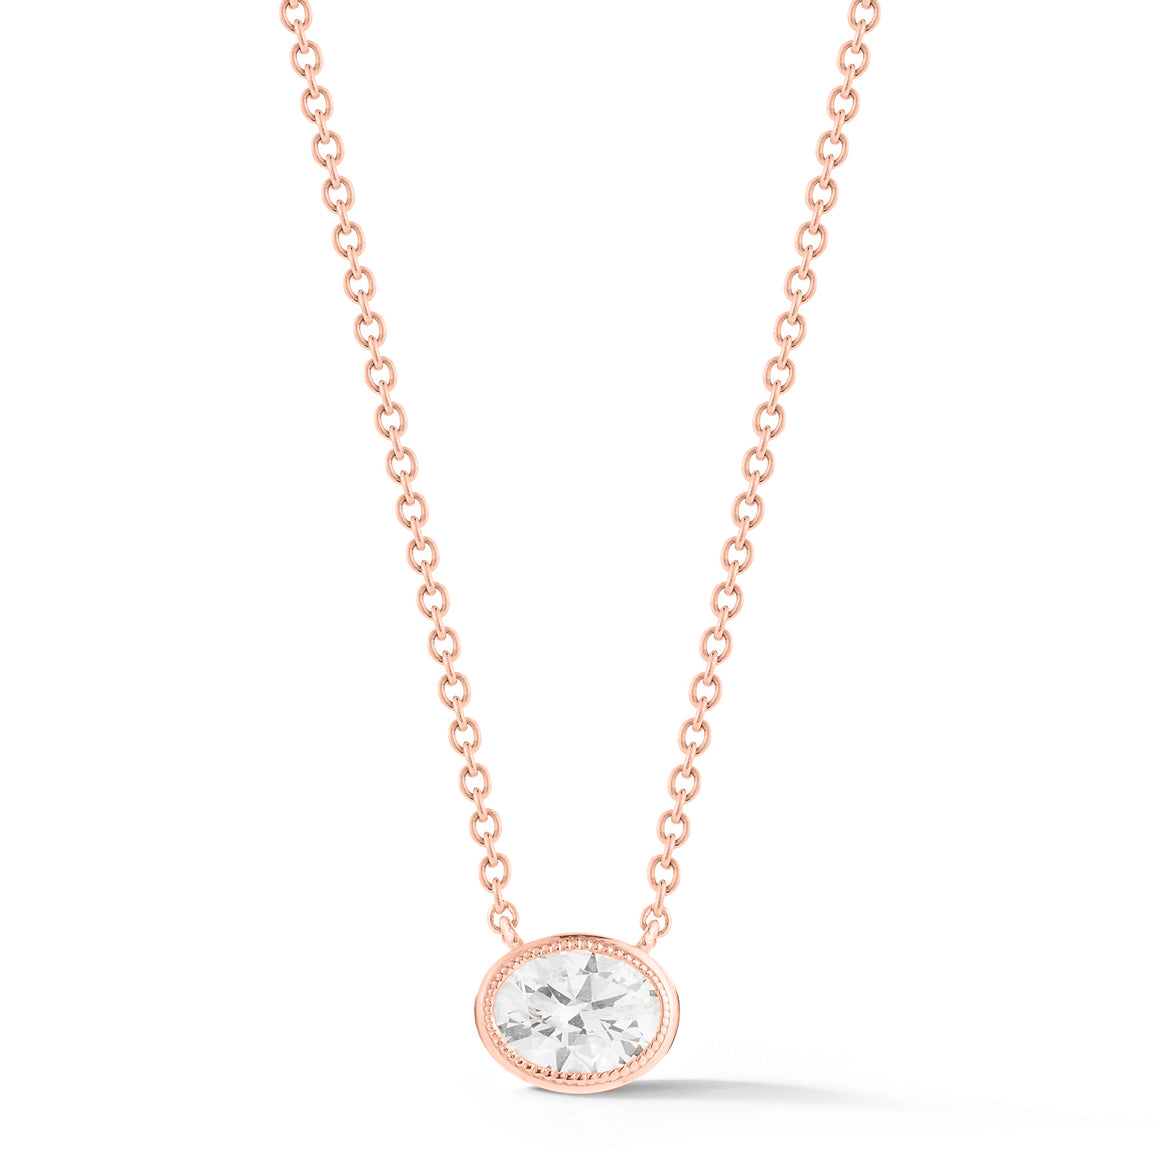 18k Rose Gold Milgrain Detail Oval Diamond Necklace - Talisman Collection